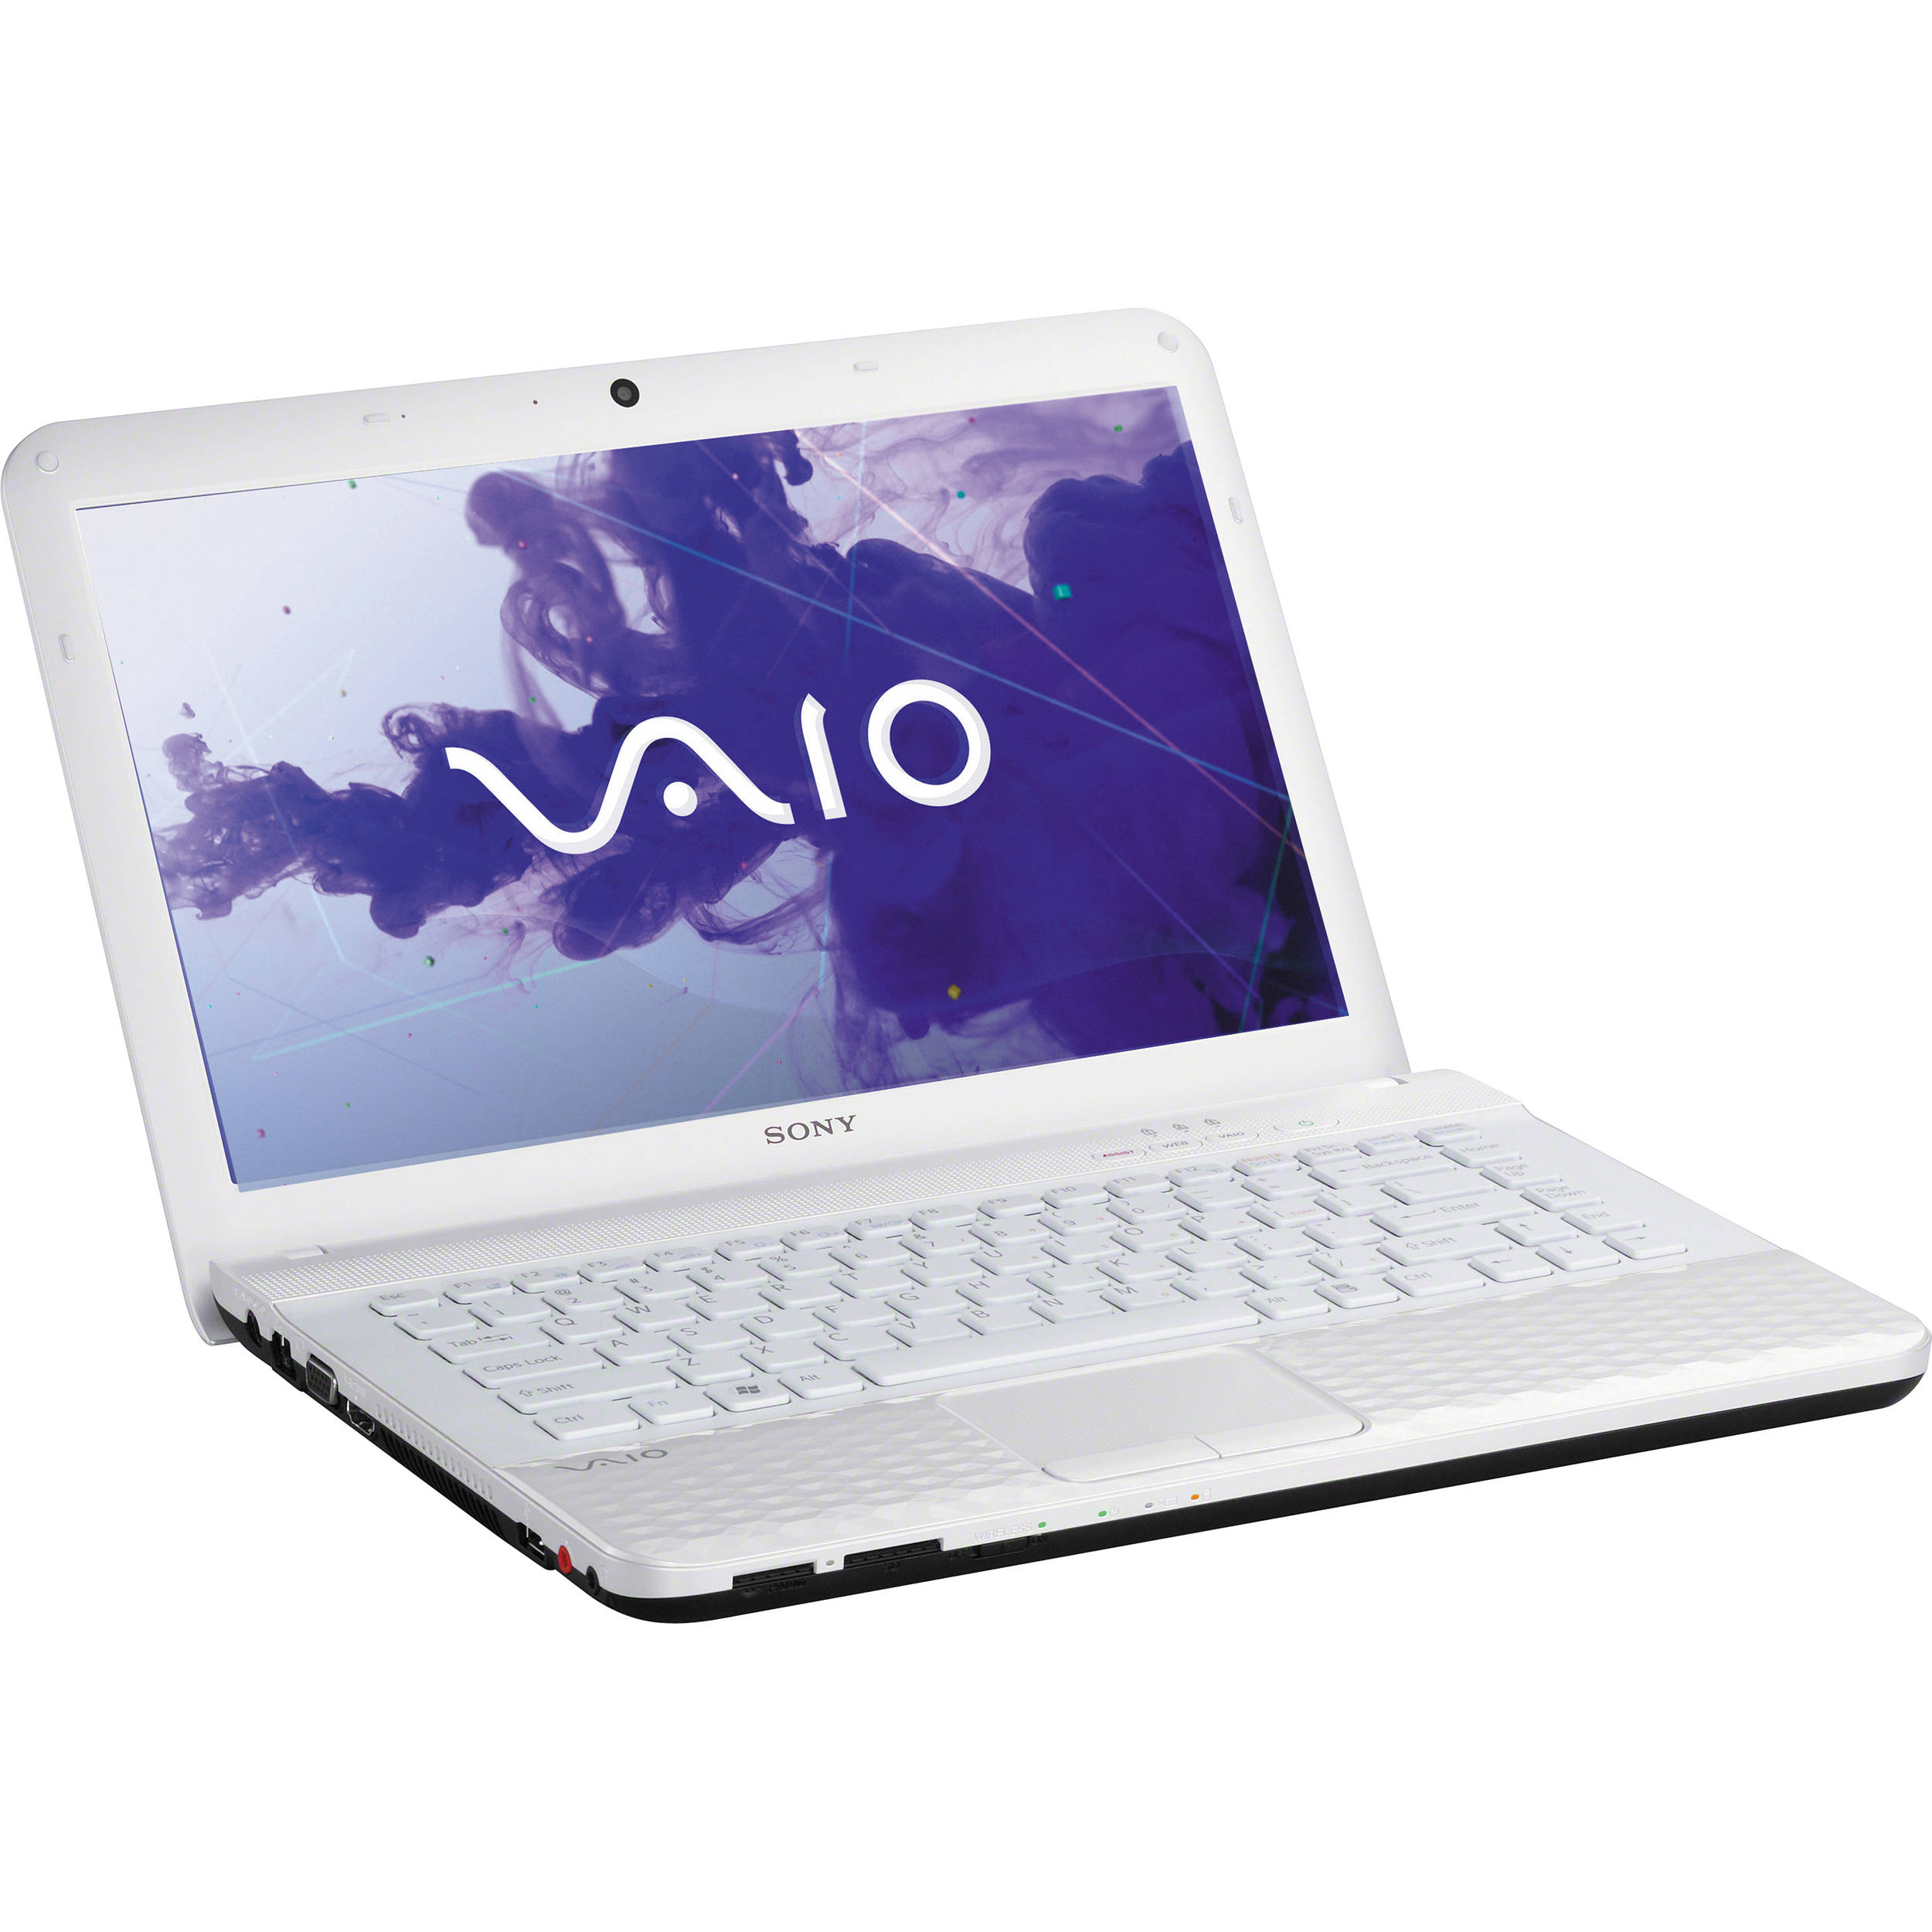 Sony Vaio VPCEG34FX/W Smart Network Drivers Download Free